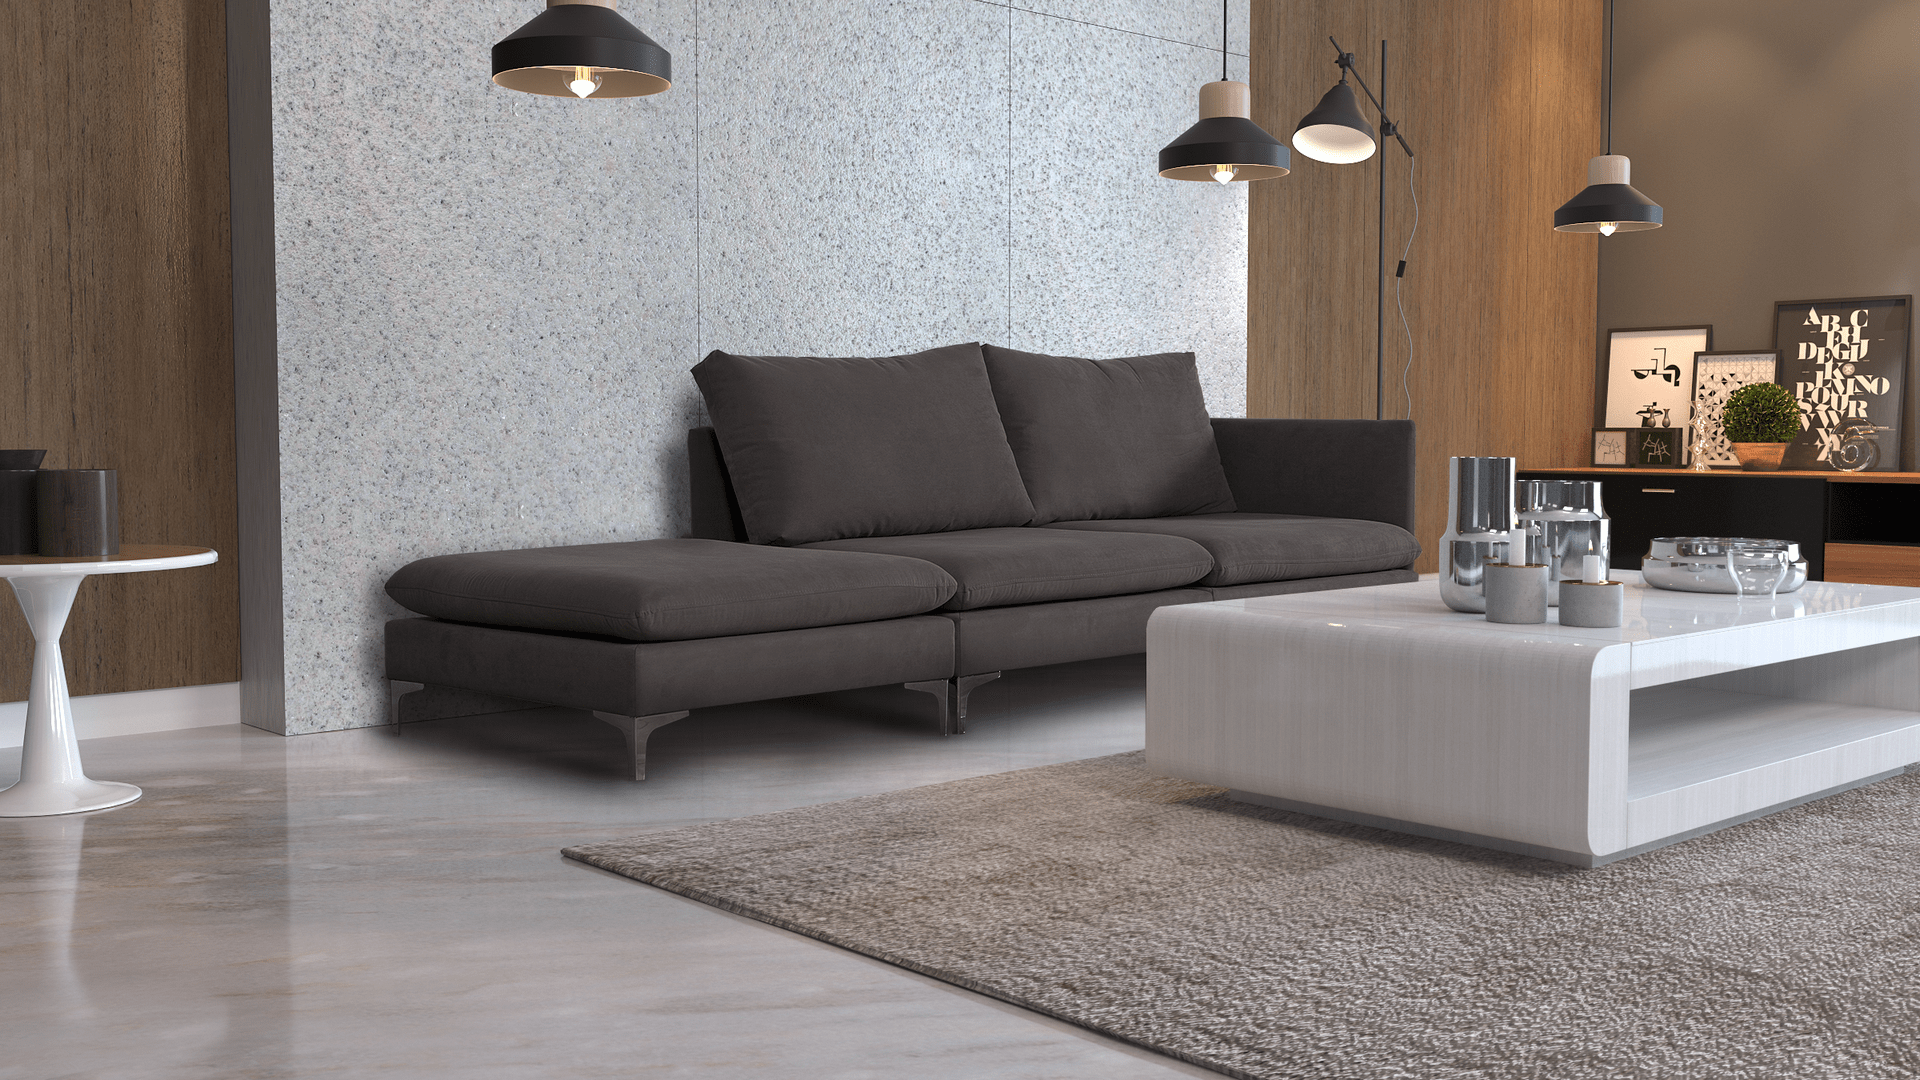 Sofa COSMO U2014 Furniture Factory Ou0027PRIME